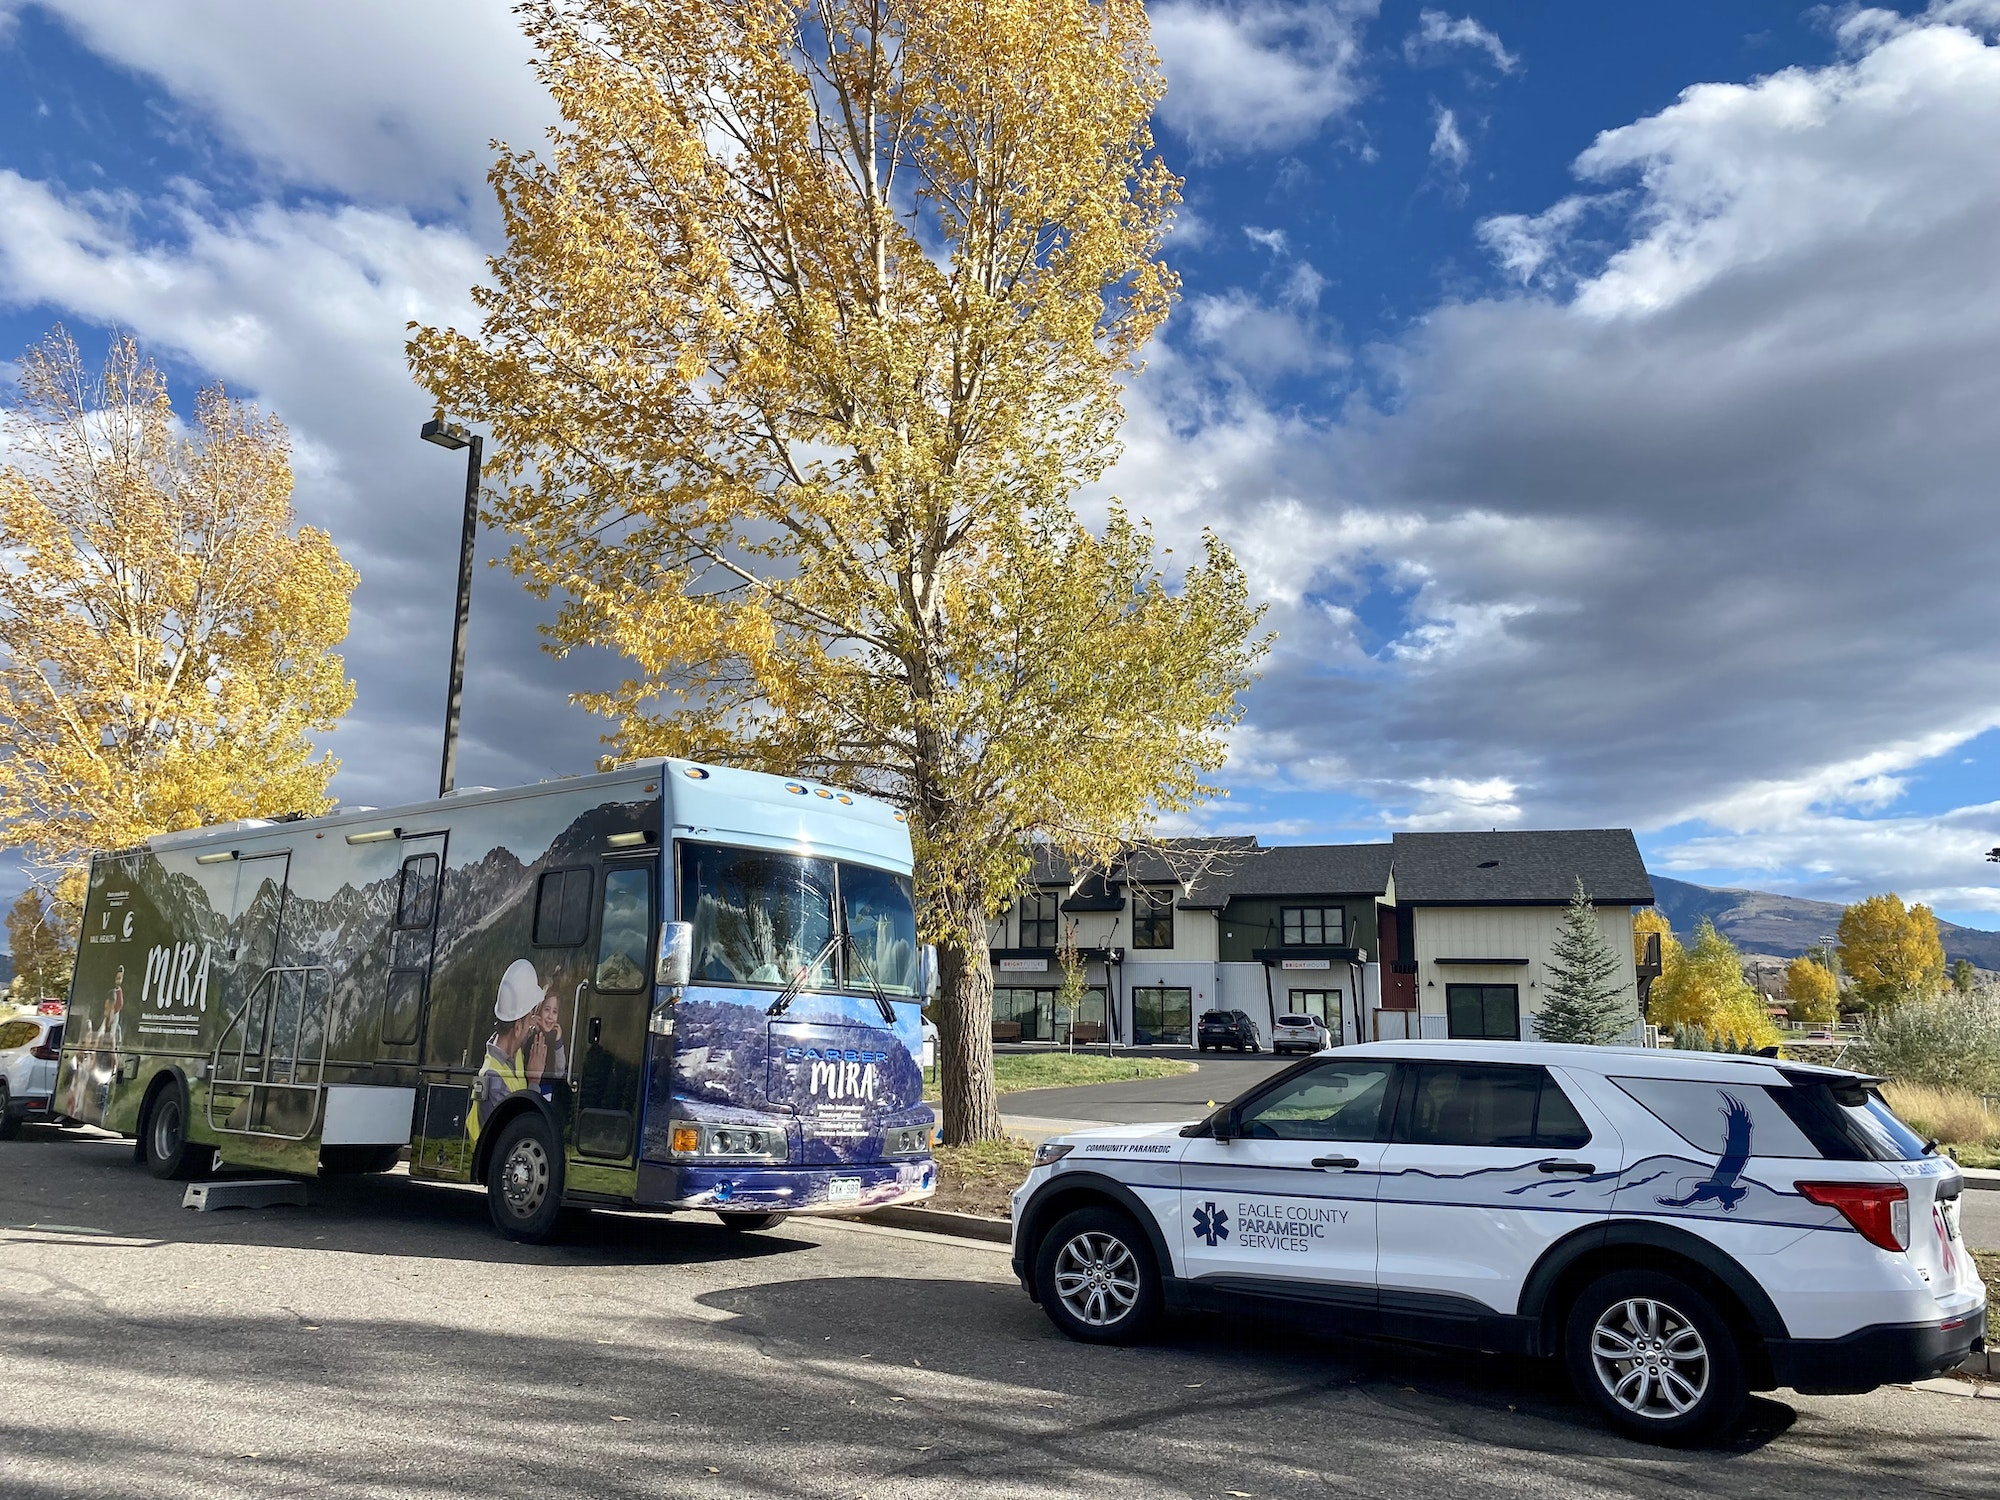 Photo of MIRA bus along with Eagle County Paramedics Community Paramedic in front of Ridley's Grocery store in Gypsum